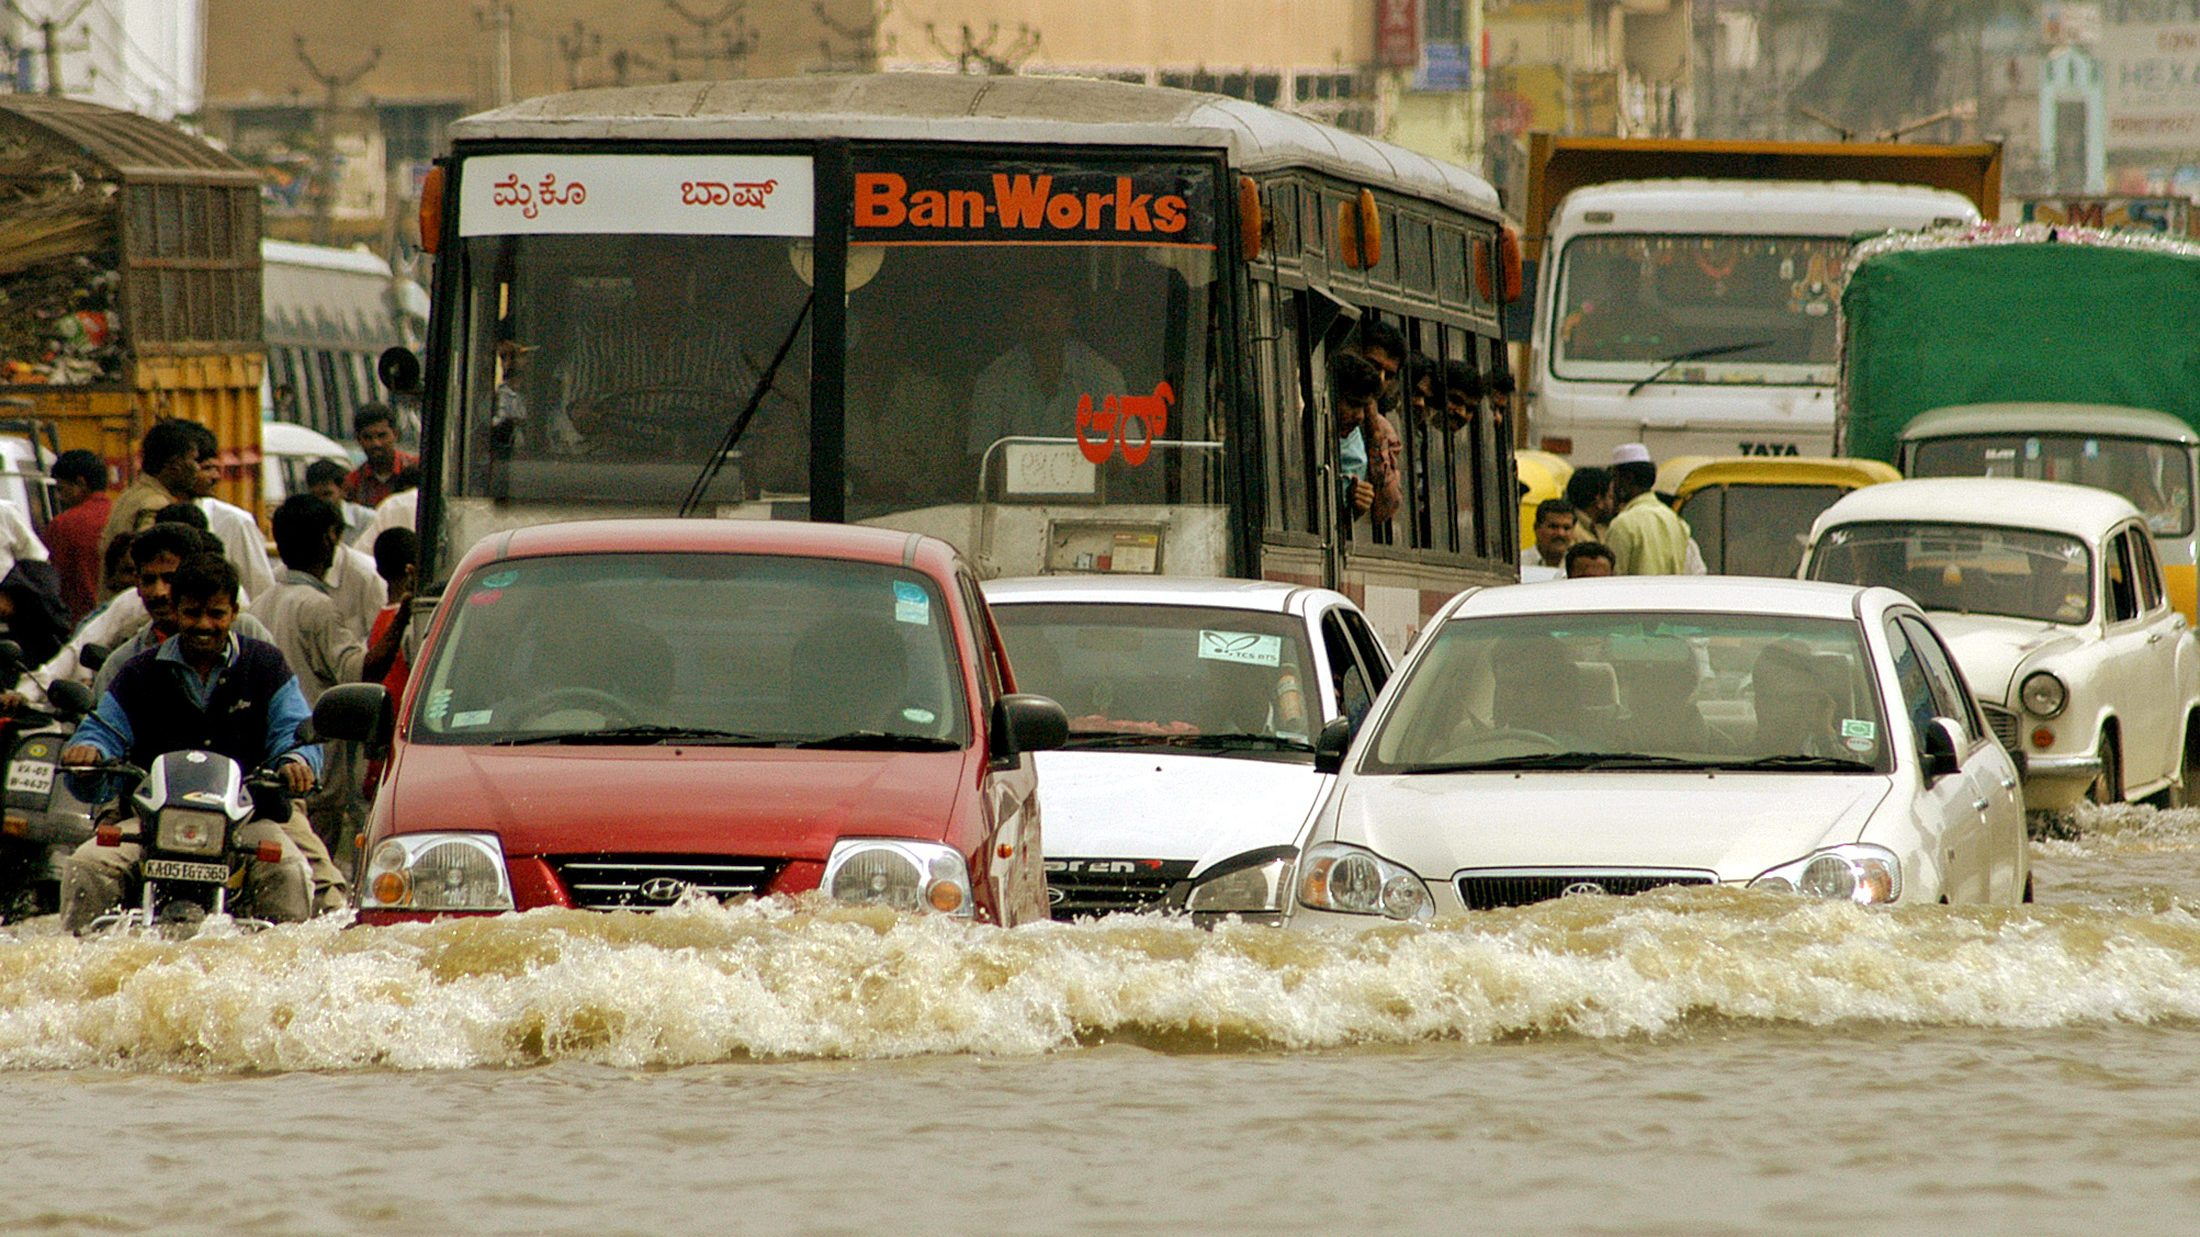 Vehicles move through a flooded road in the southern Indian city of Bangalore October 24, 2005. Heavy rain swamped parts of southern India and disrupted traffic.